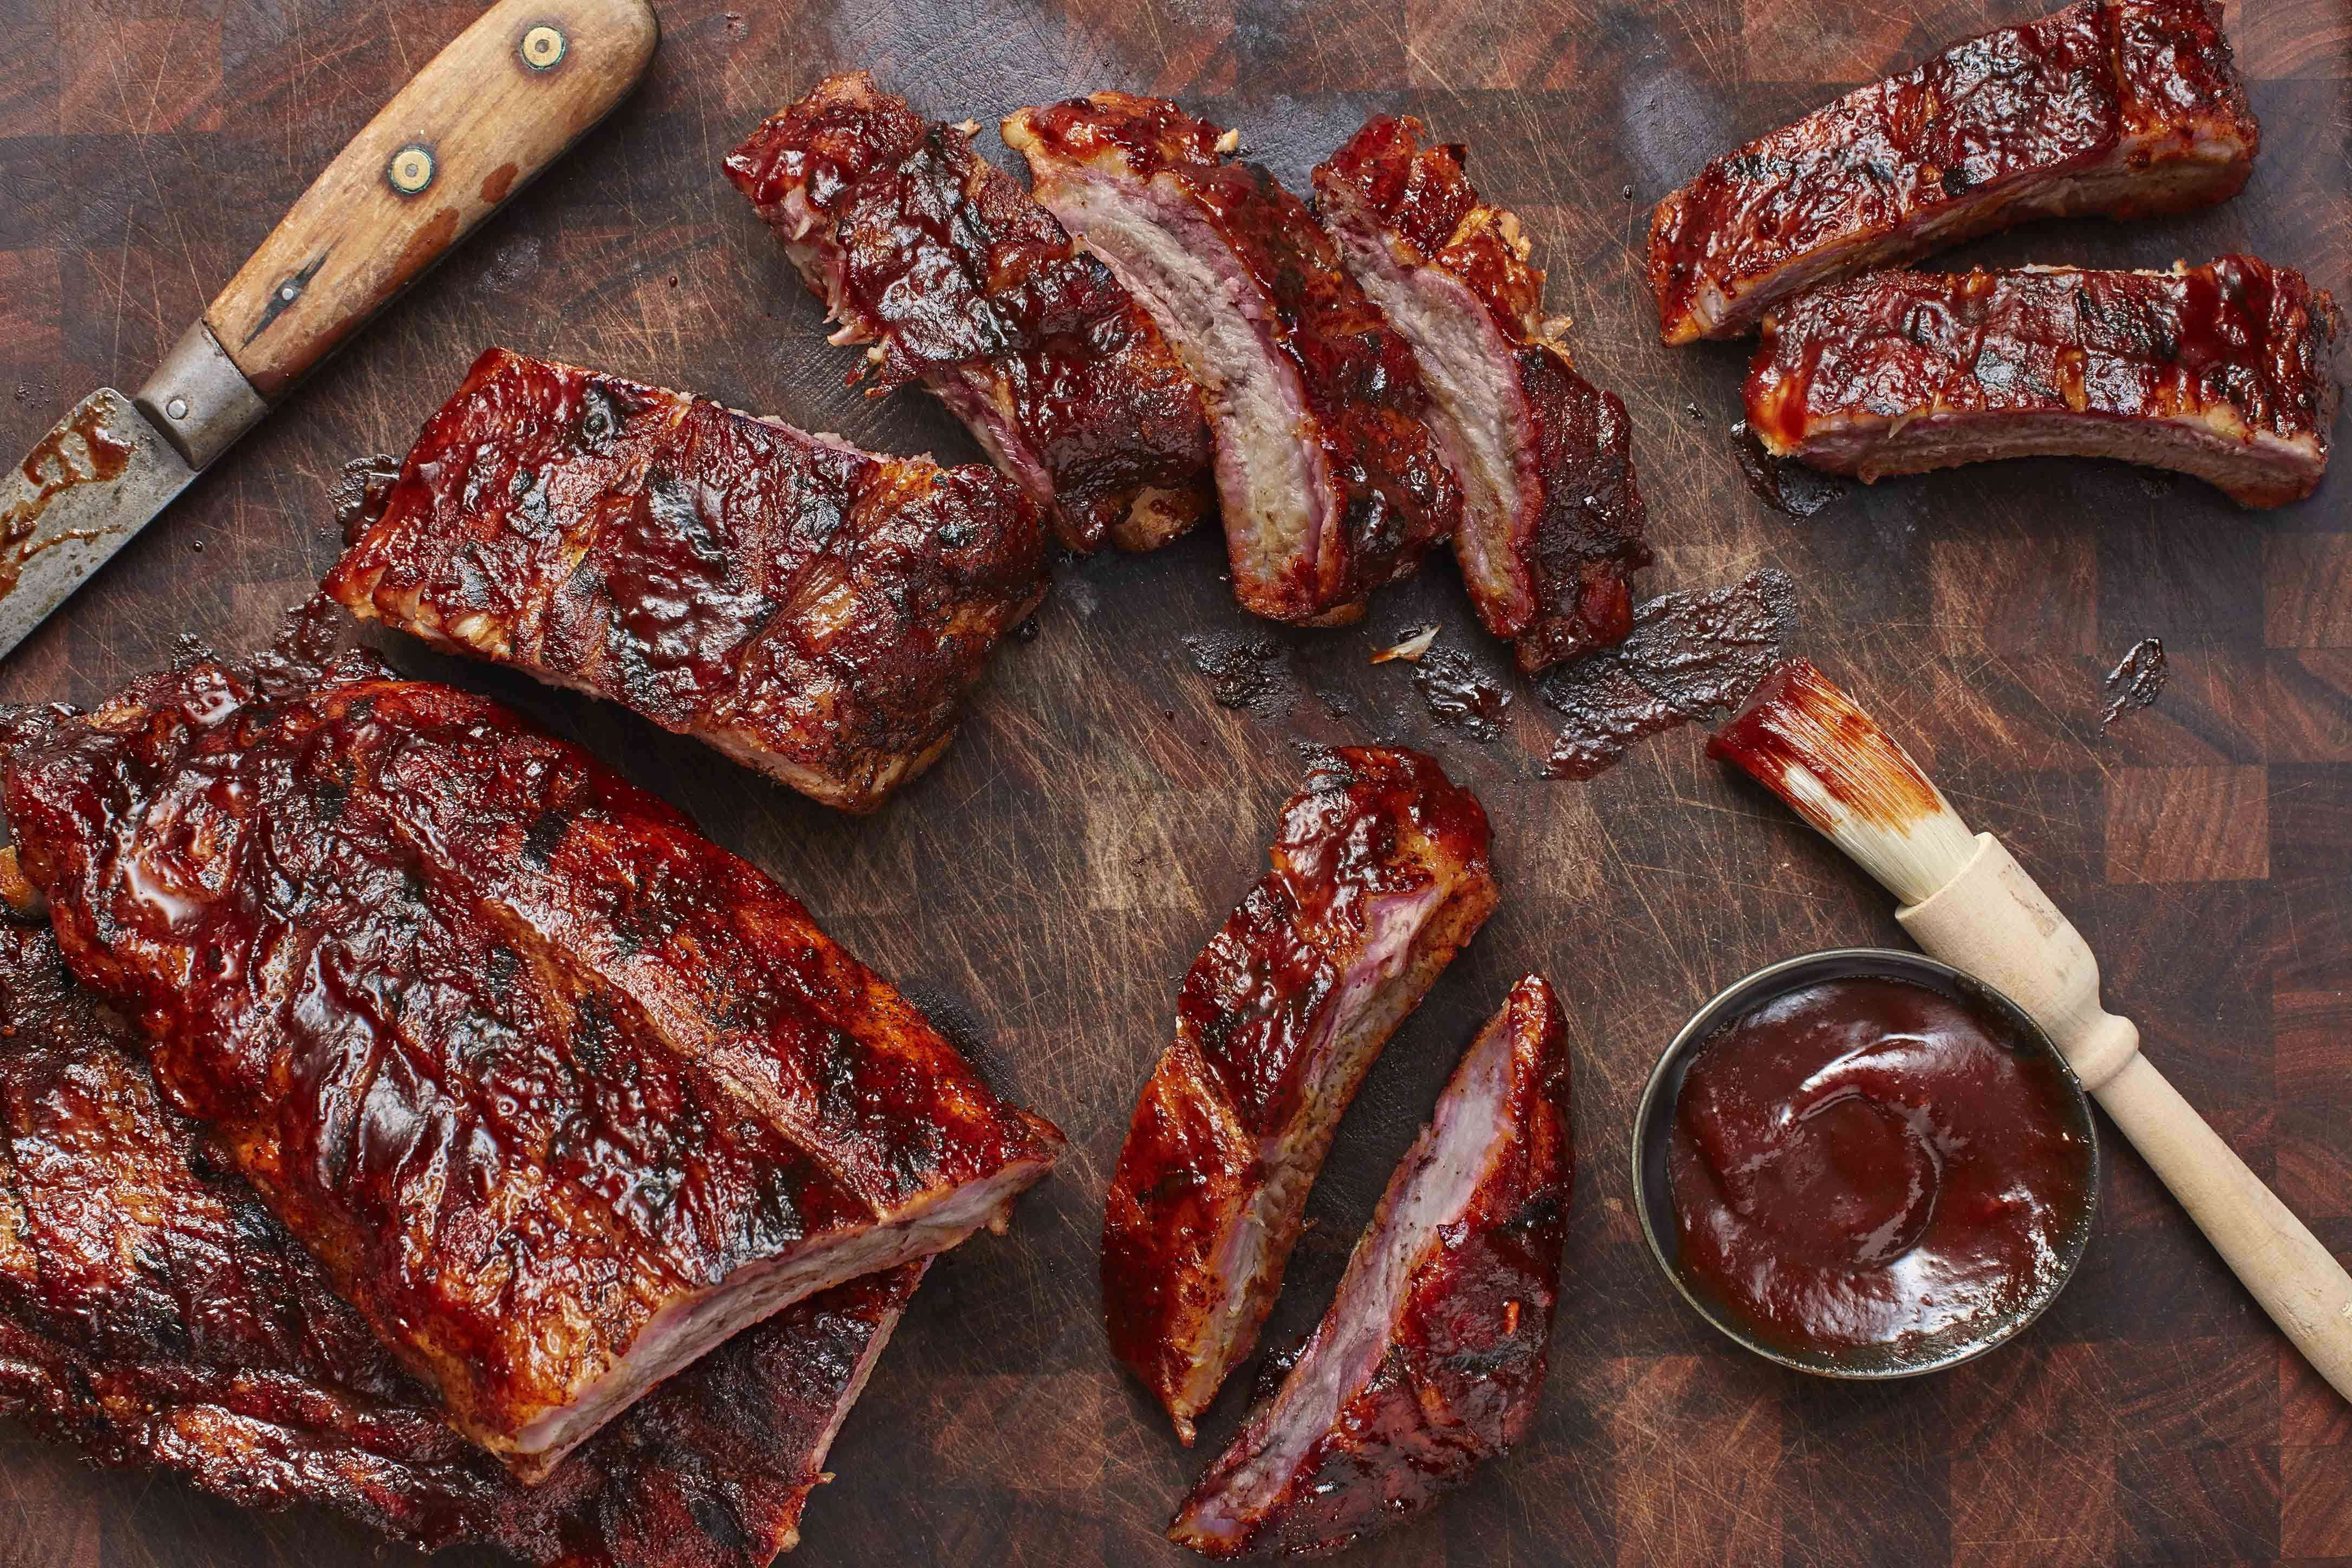 How To Easily Gas Grill The Best Pork Ribs Recipe Ribs On Grill Pork Ribs Grilled Pork Ribs